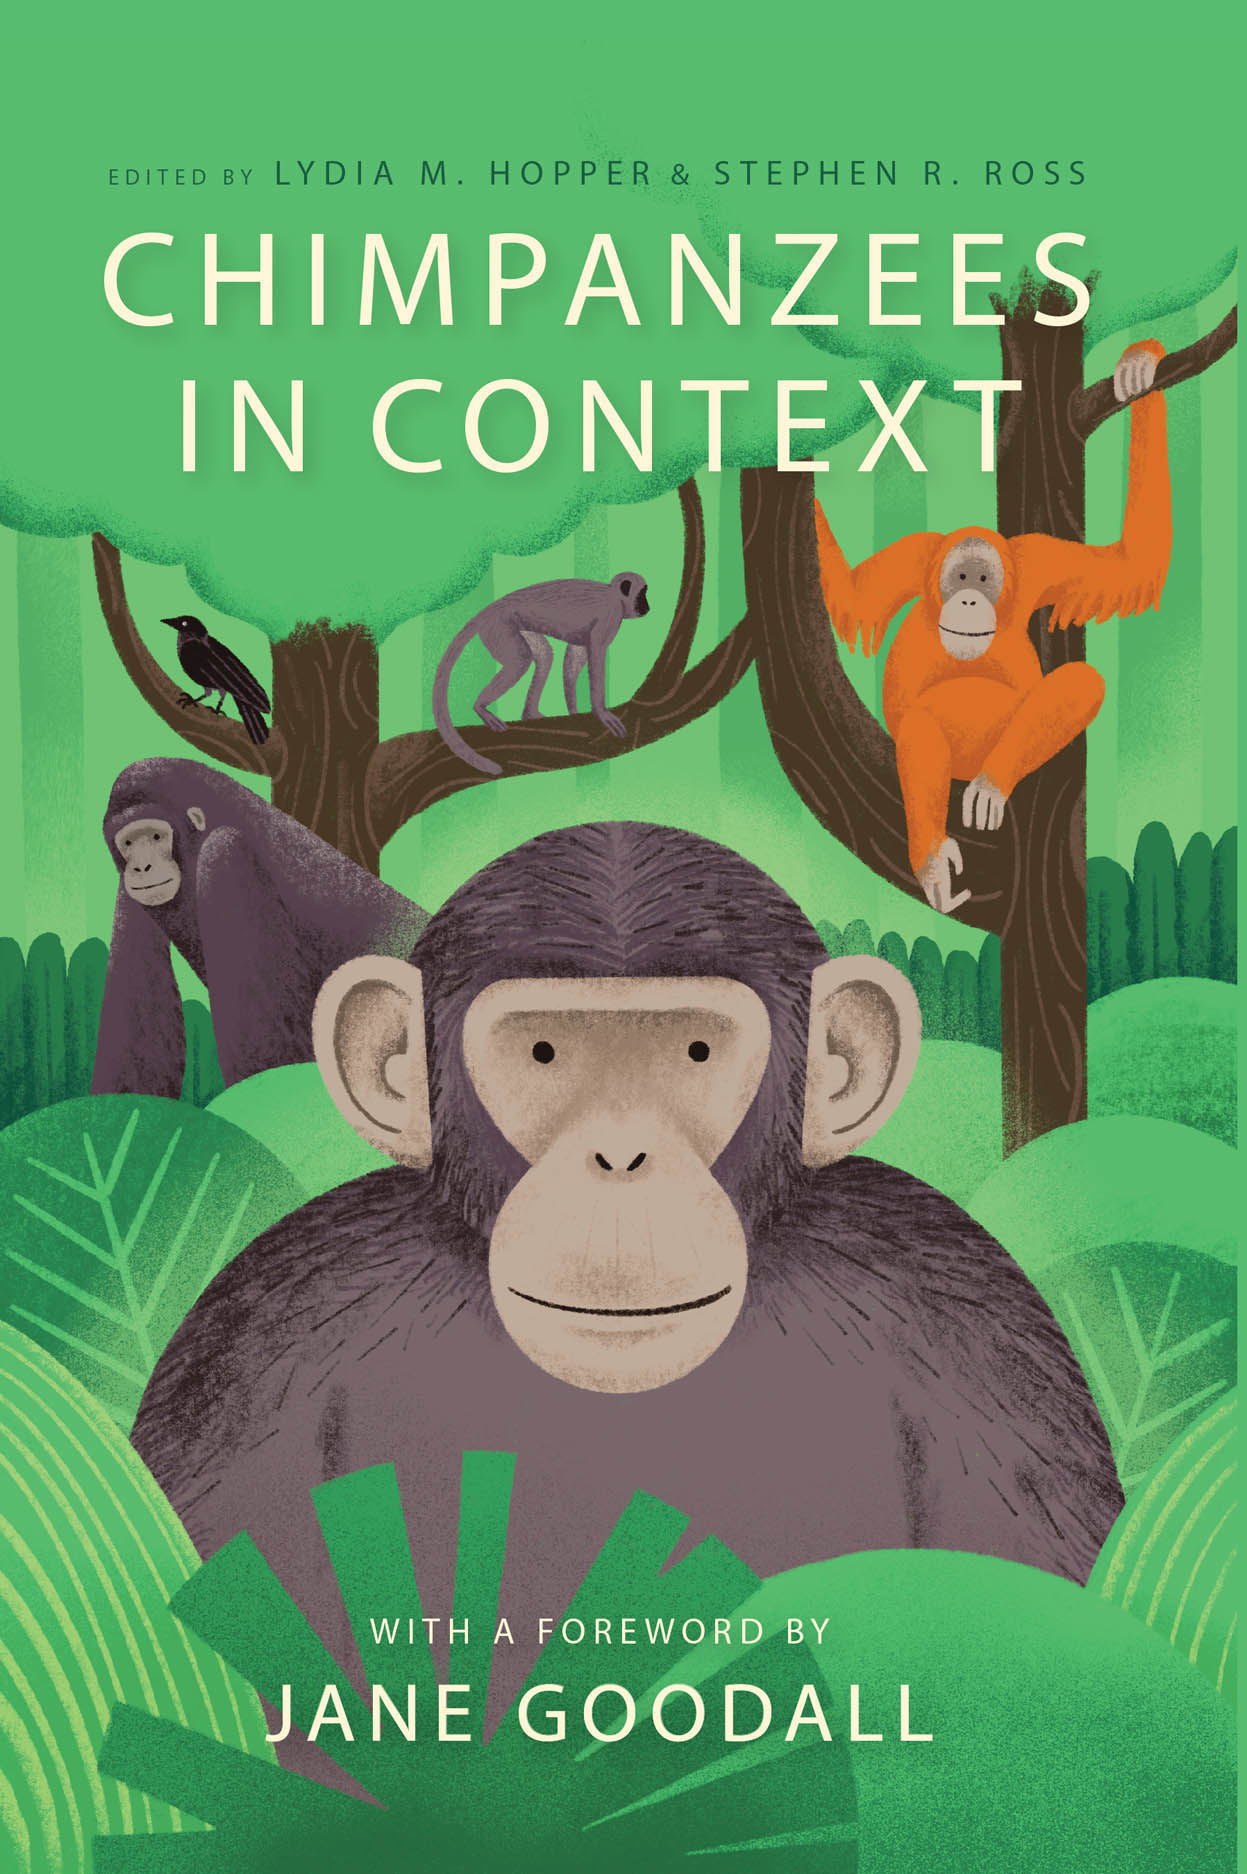 Chimpanzees in Context: A Comparative Perspective on Chimpanzee Behavior, Cognition, Conservation, and Welfare